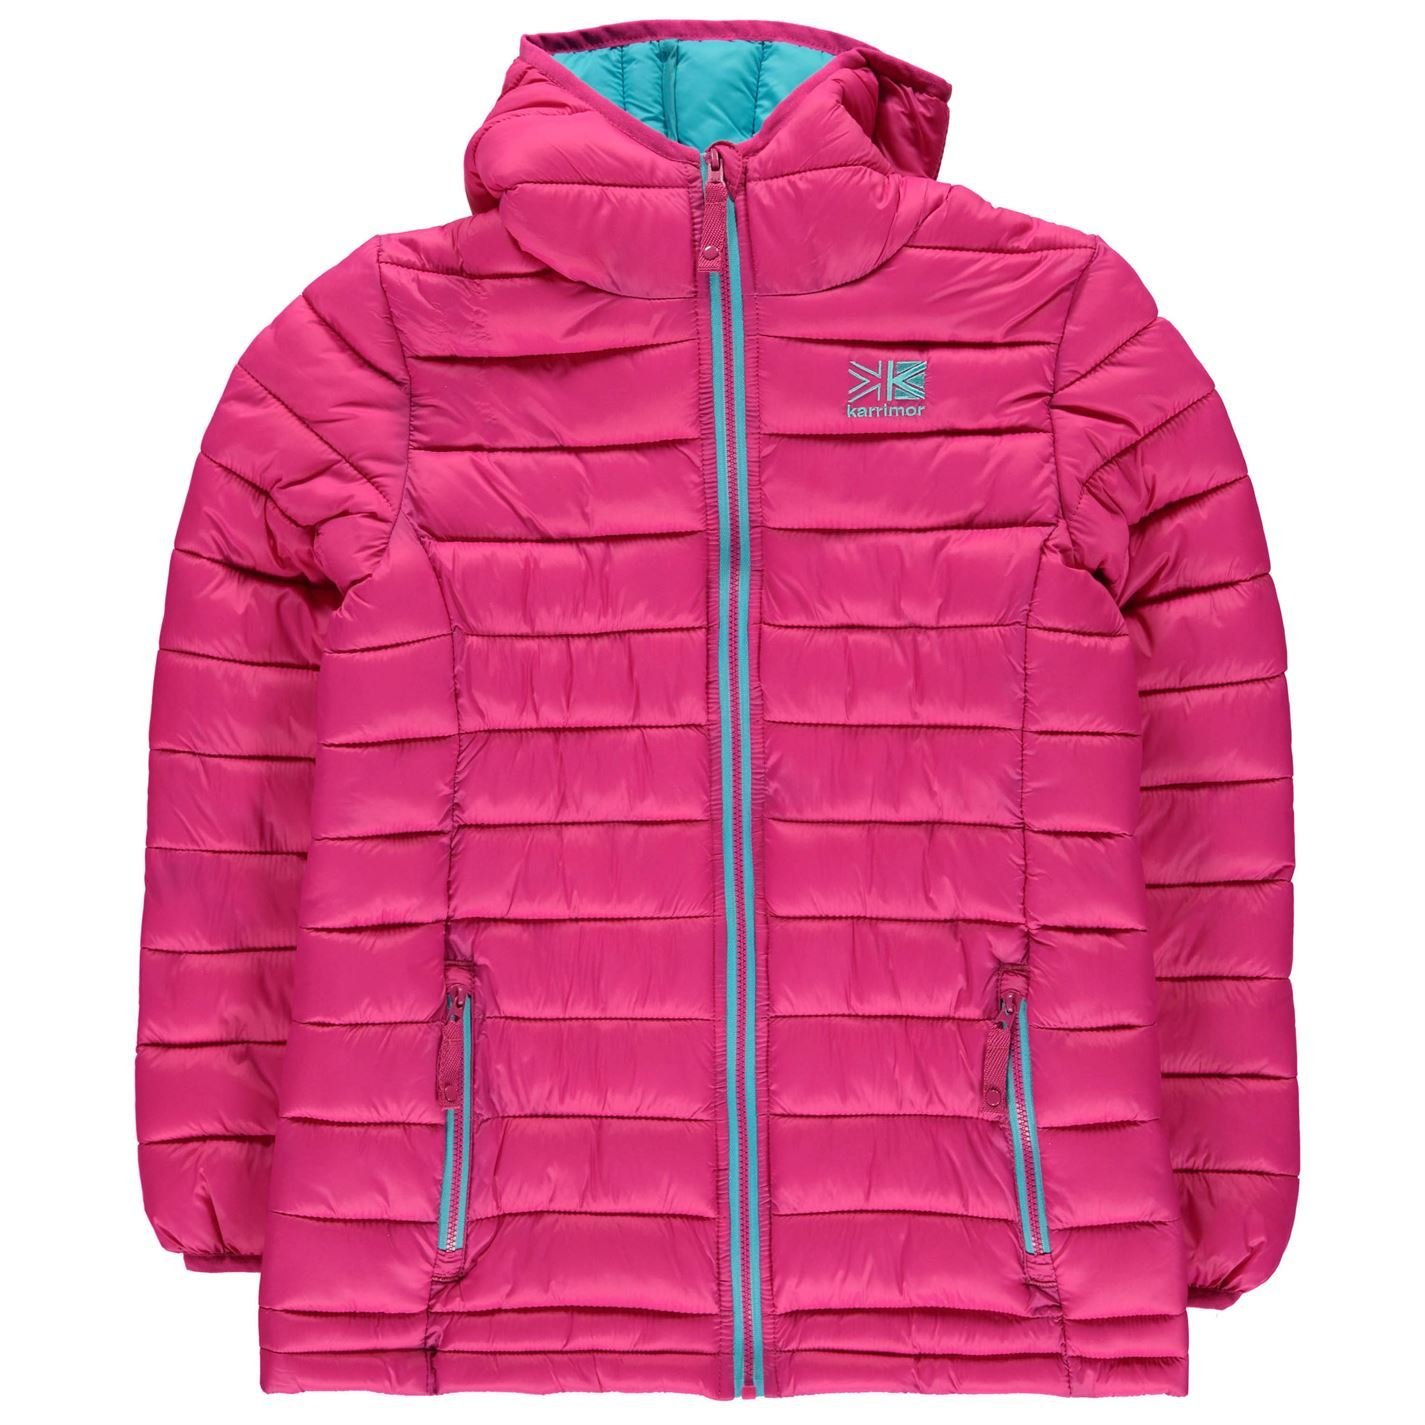 a4d24ee79 Karrimor Kids Hot Crag Insulated Jacket Junior Down Coat Top Long Sleeve  Chin Pink 11-12 (LG)